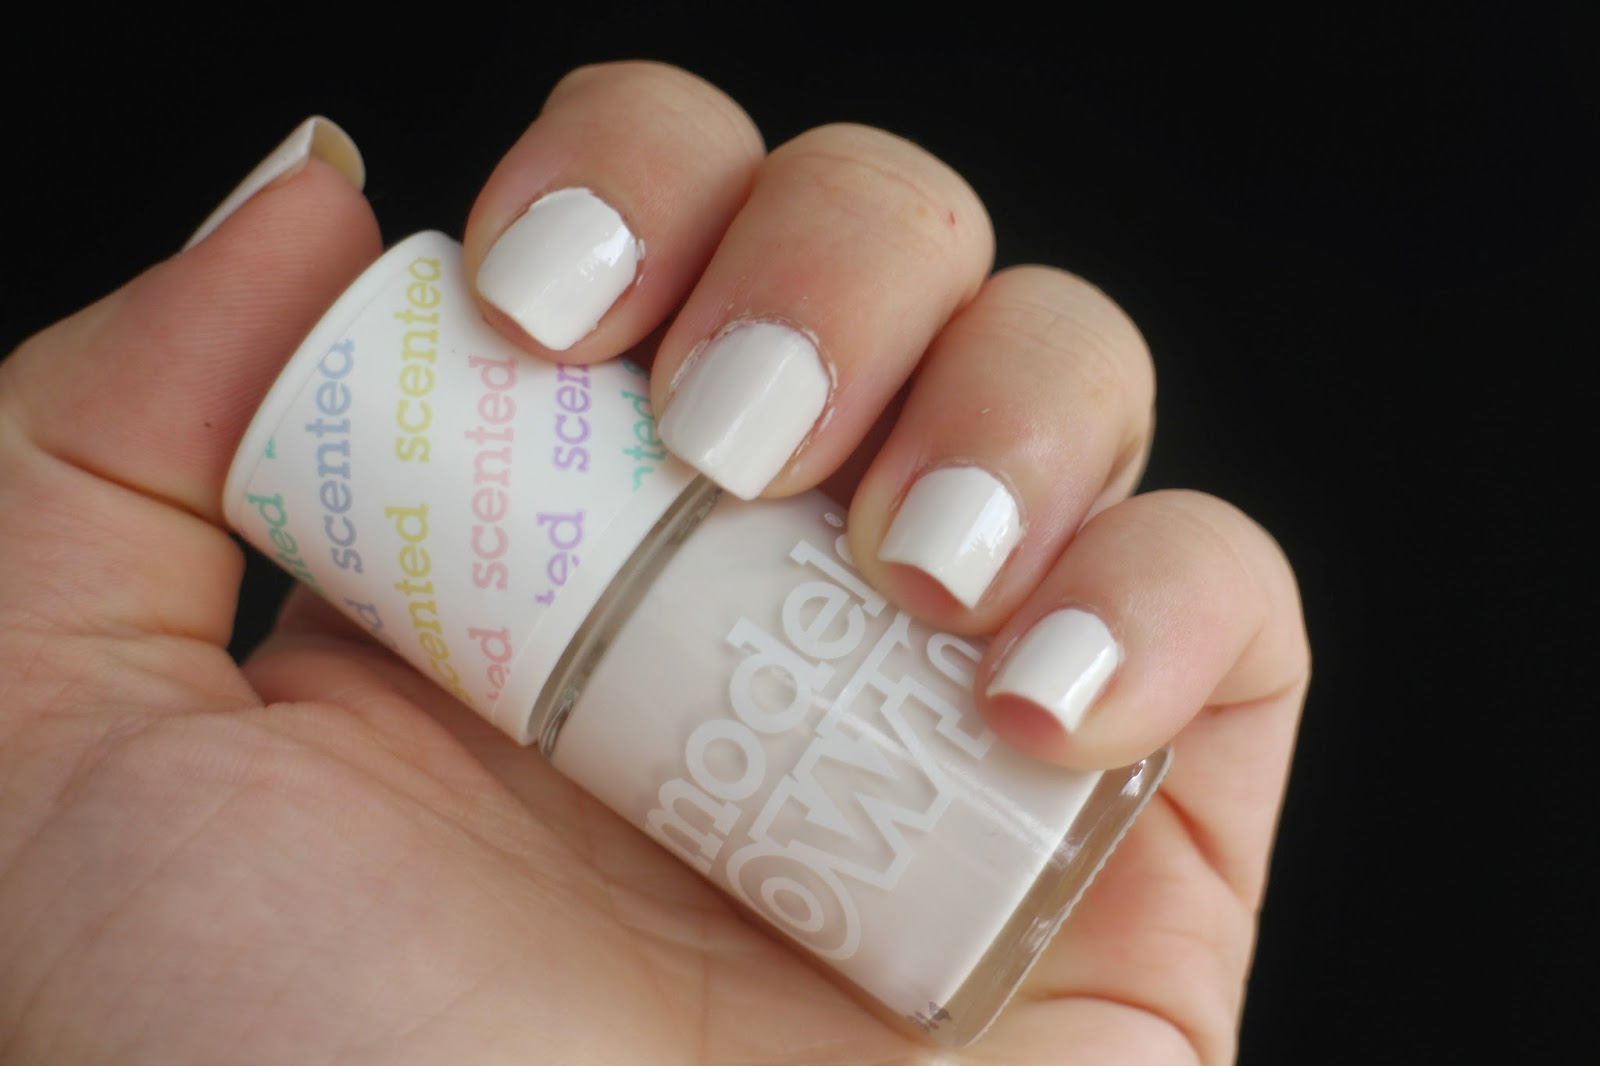 NOTD - Models Own Coconut